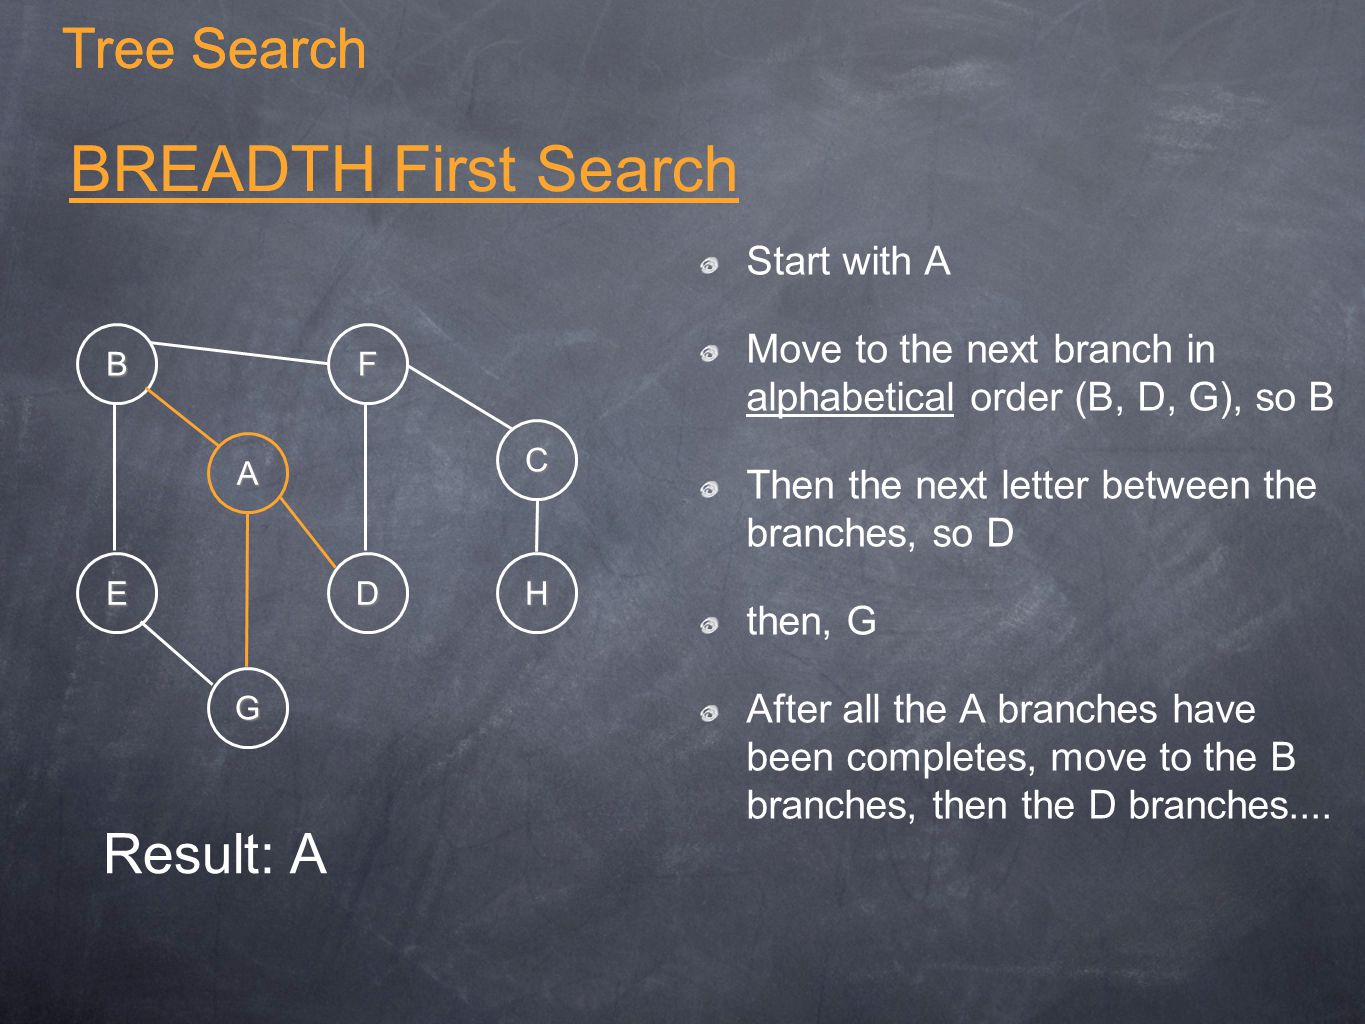 Tree Search Start with A Move to the next branch in alphabetical order (B, D, G), so B Then the next letter between the branches, so D then, G After all the A branches have been completes, move to the B branches, then the D branches....